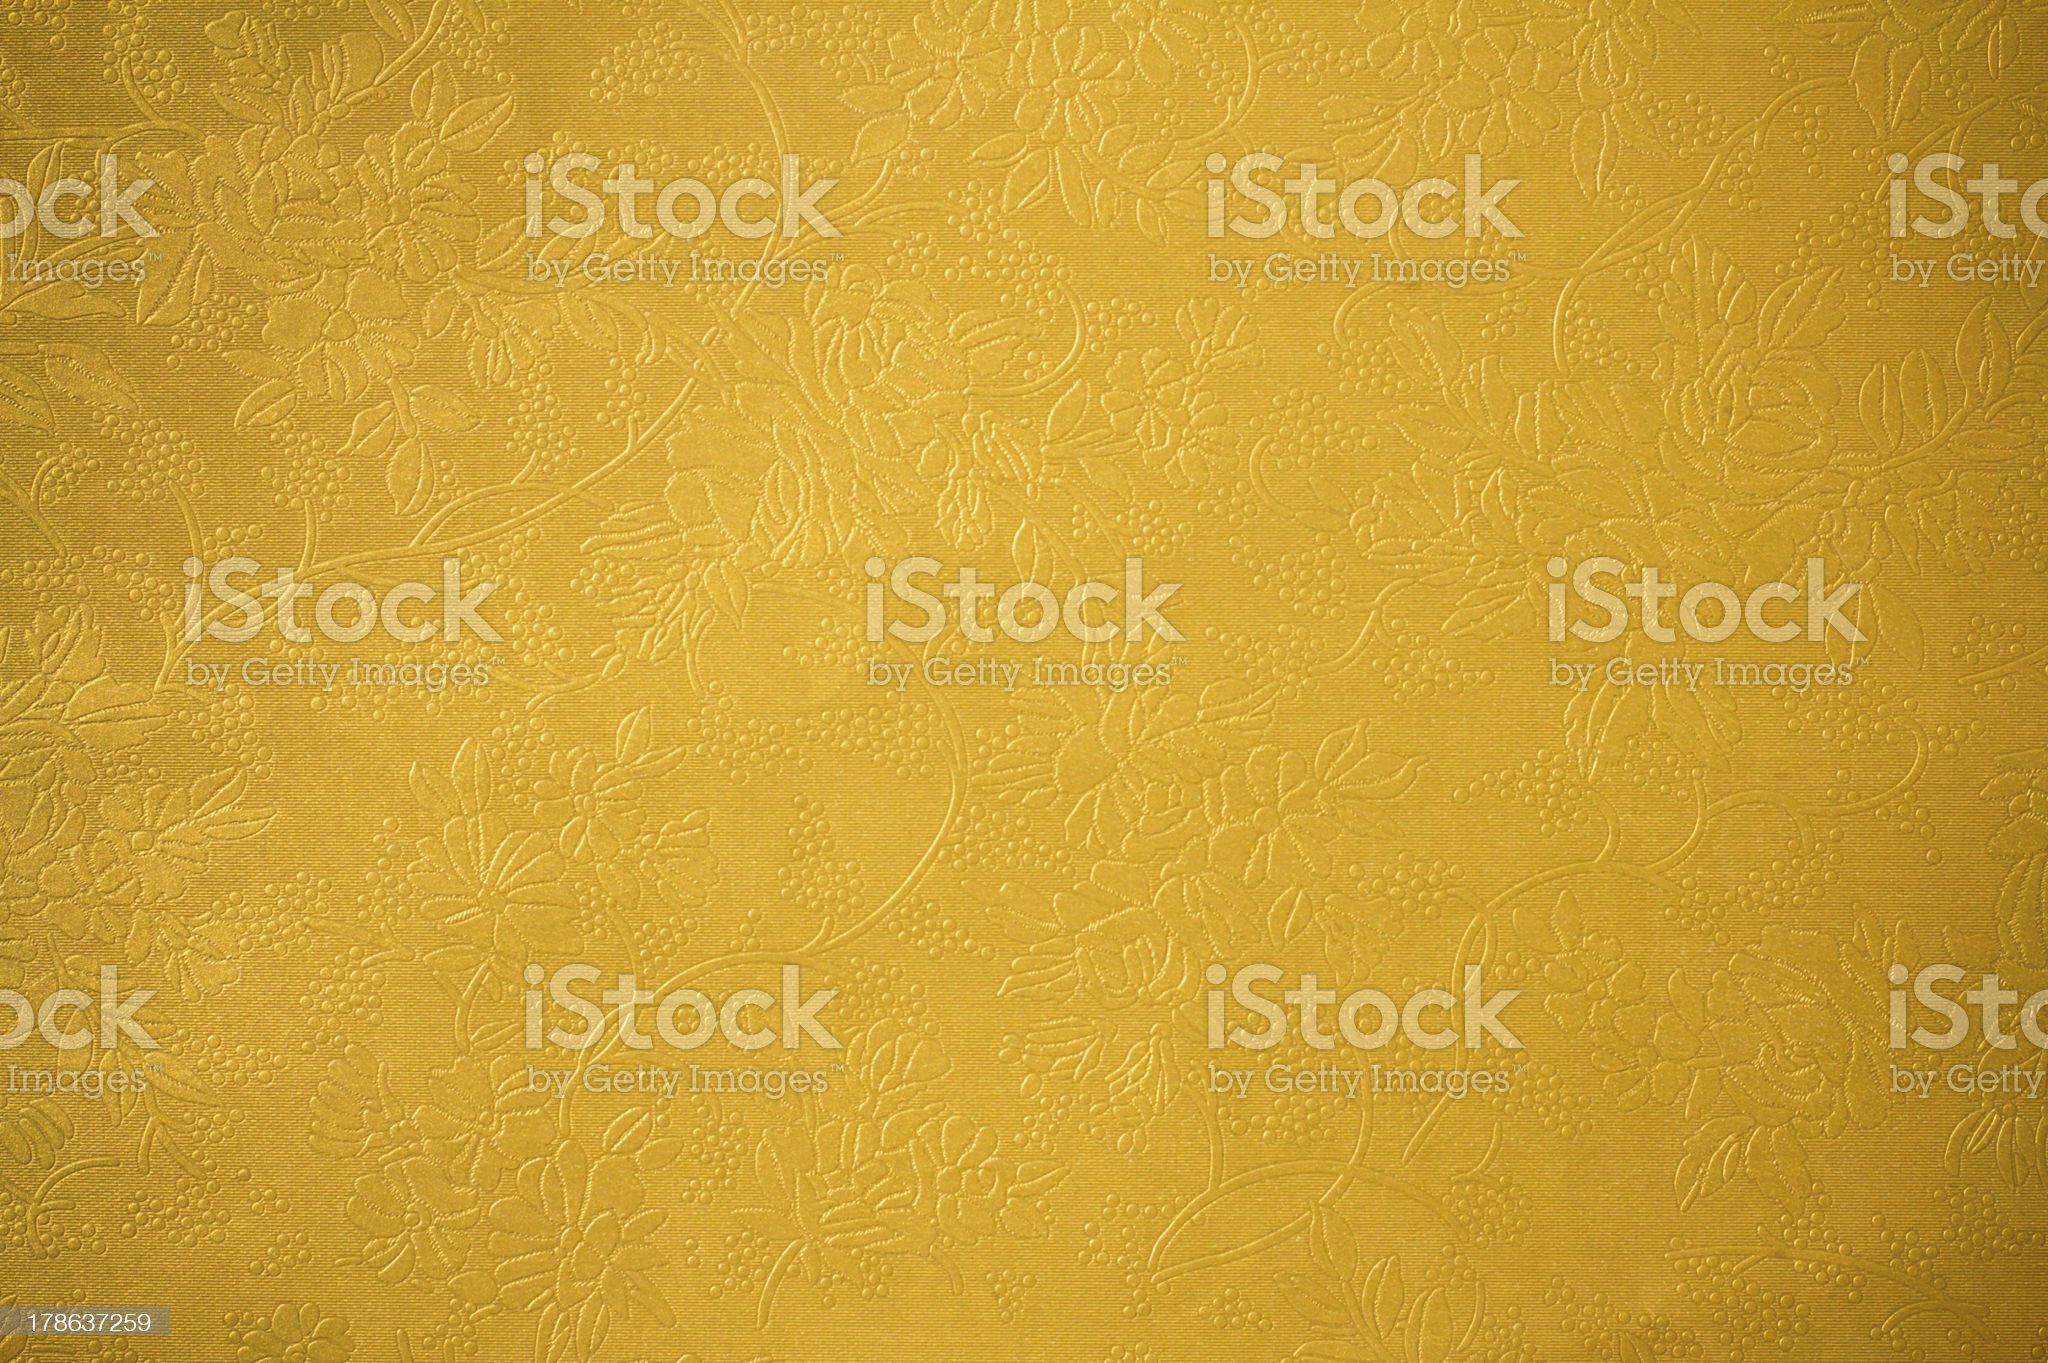 Golden vintage background royalty-free stock photo